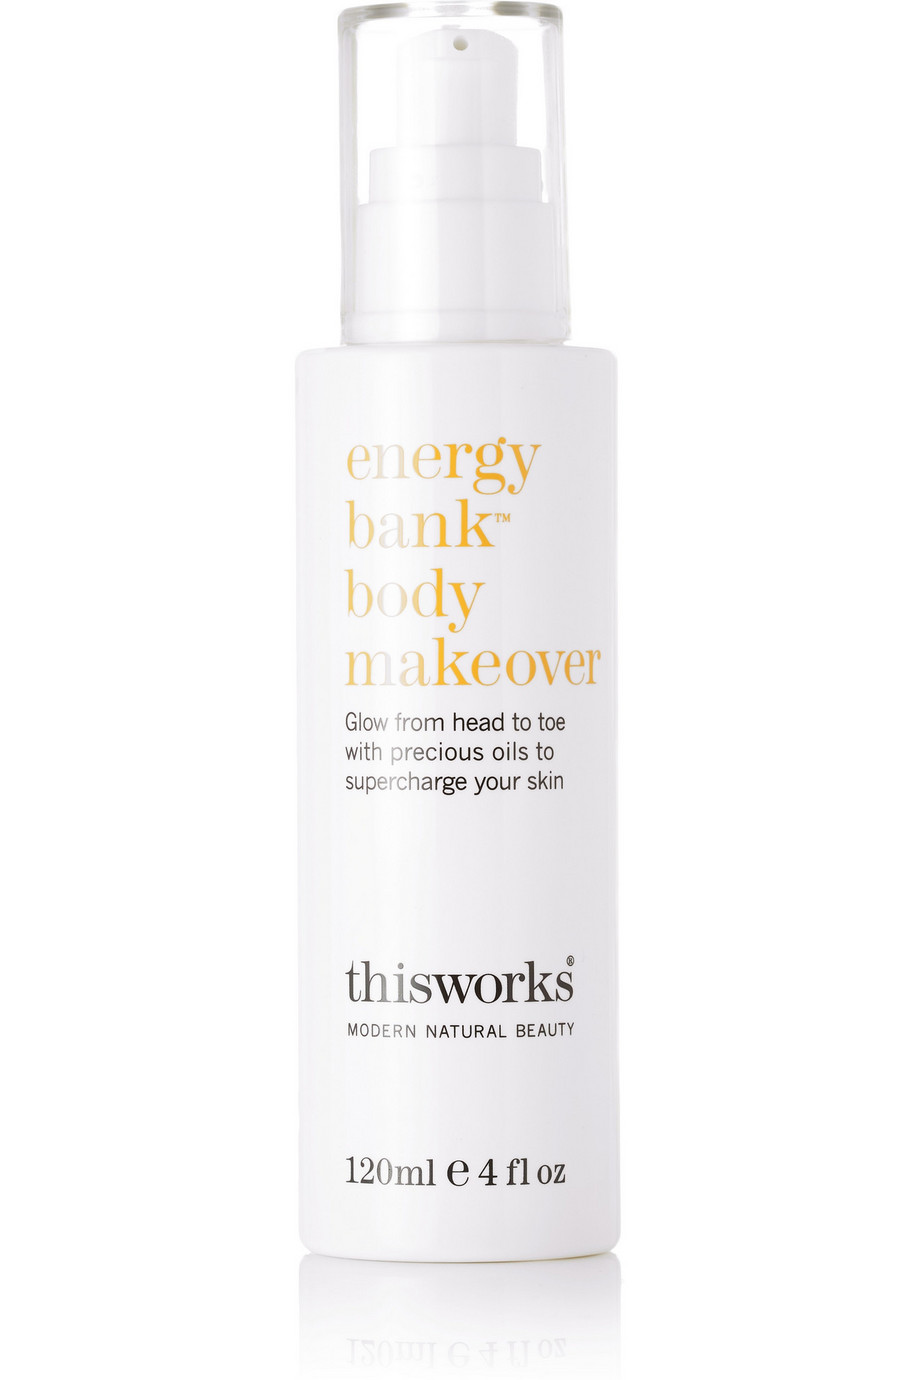 Energy Bank Body Makeover, 120ml, by This Works